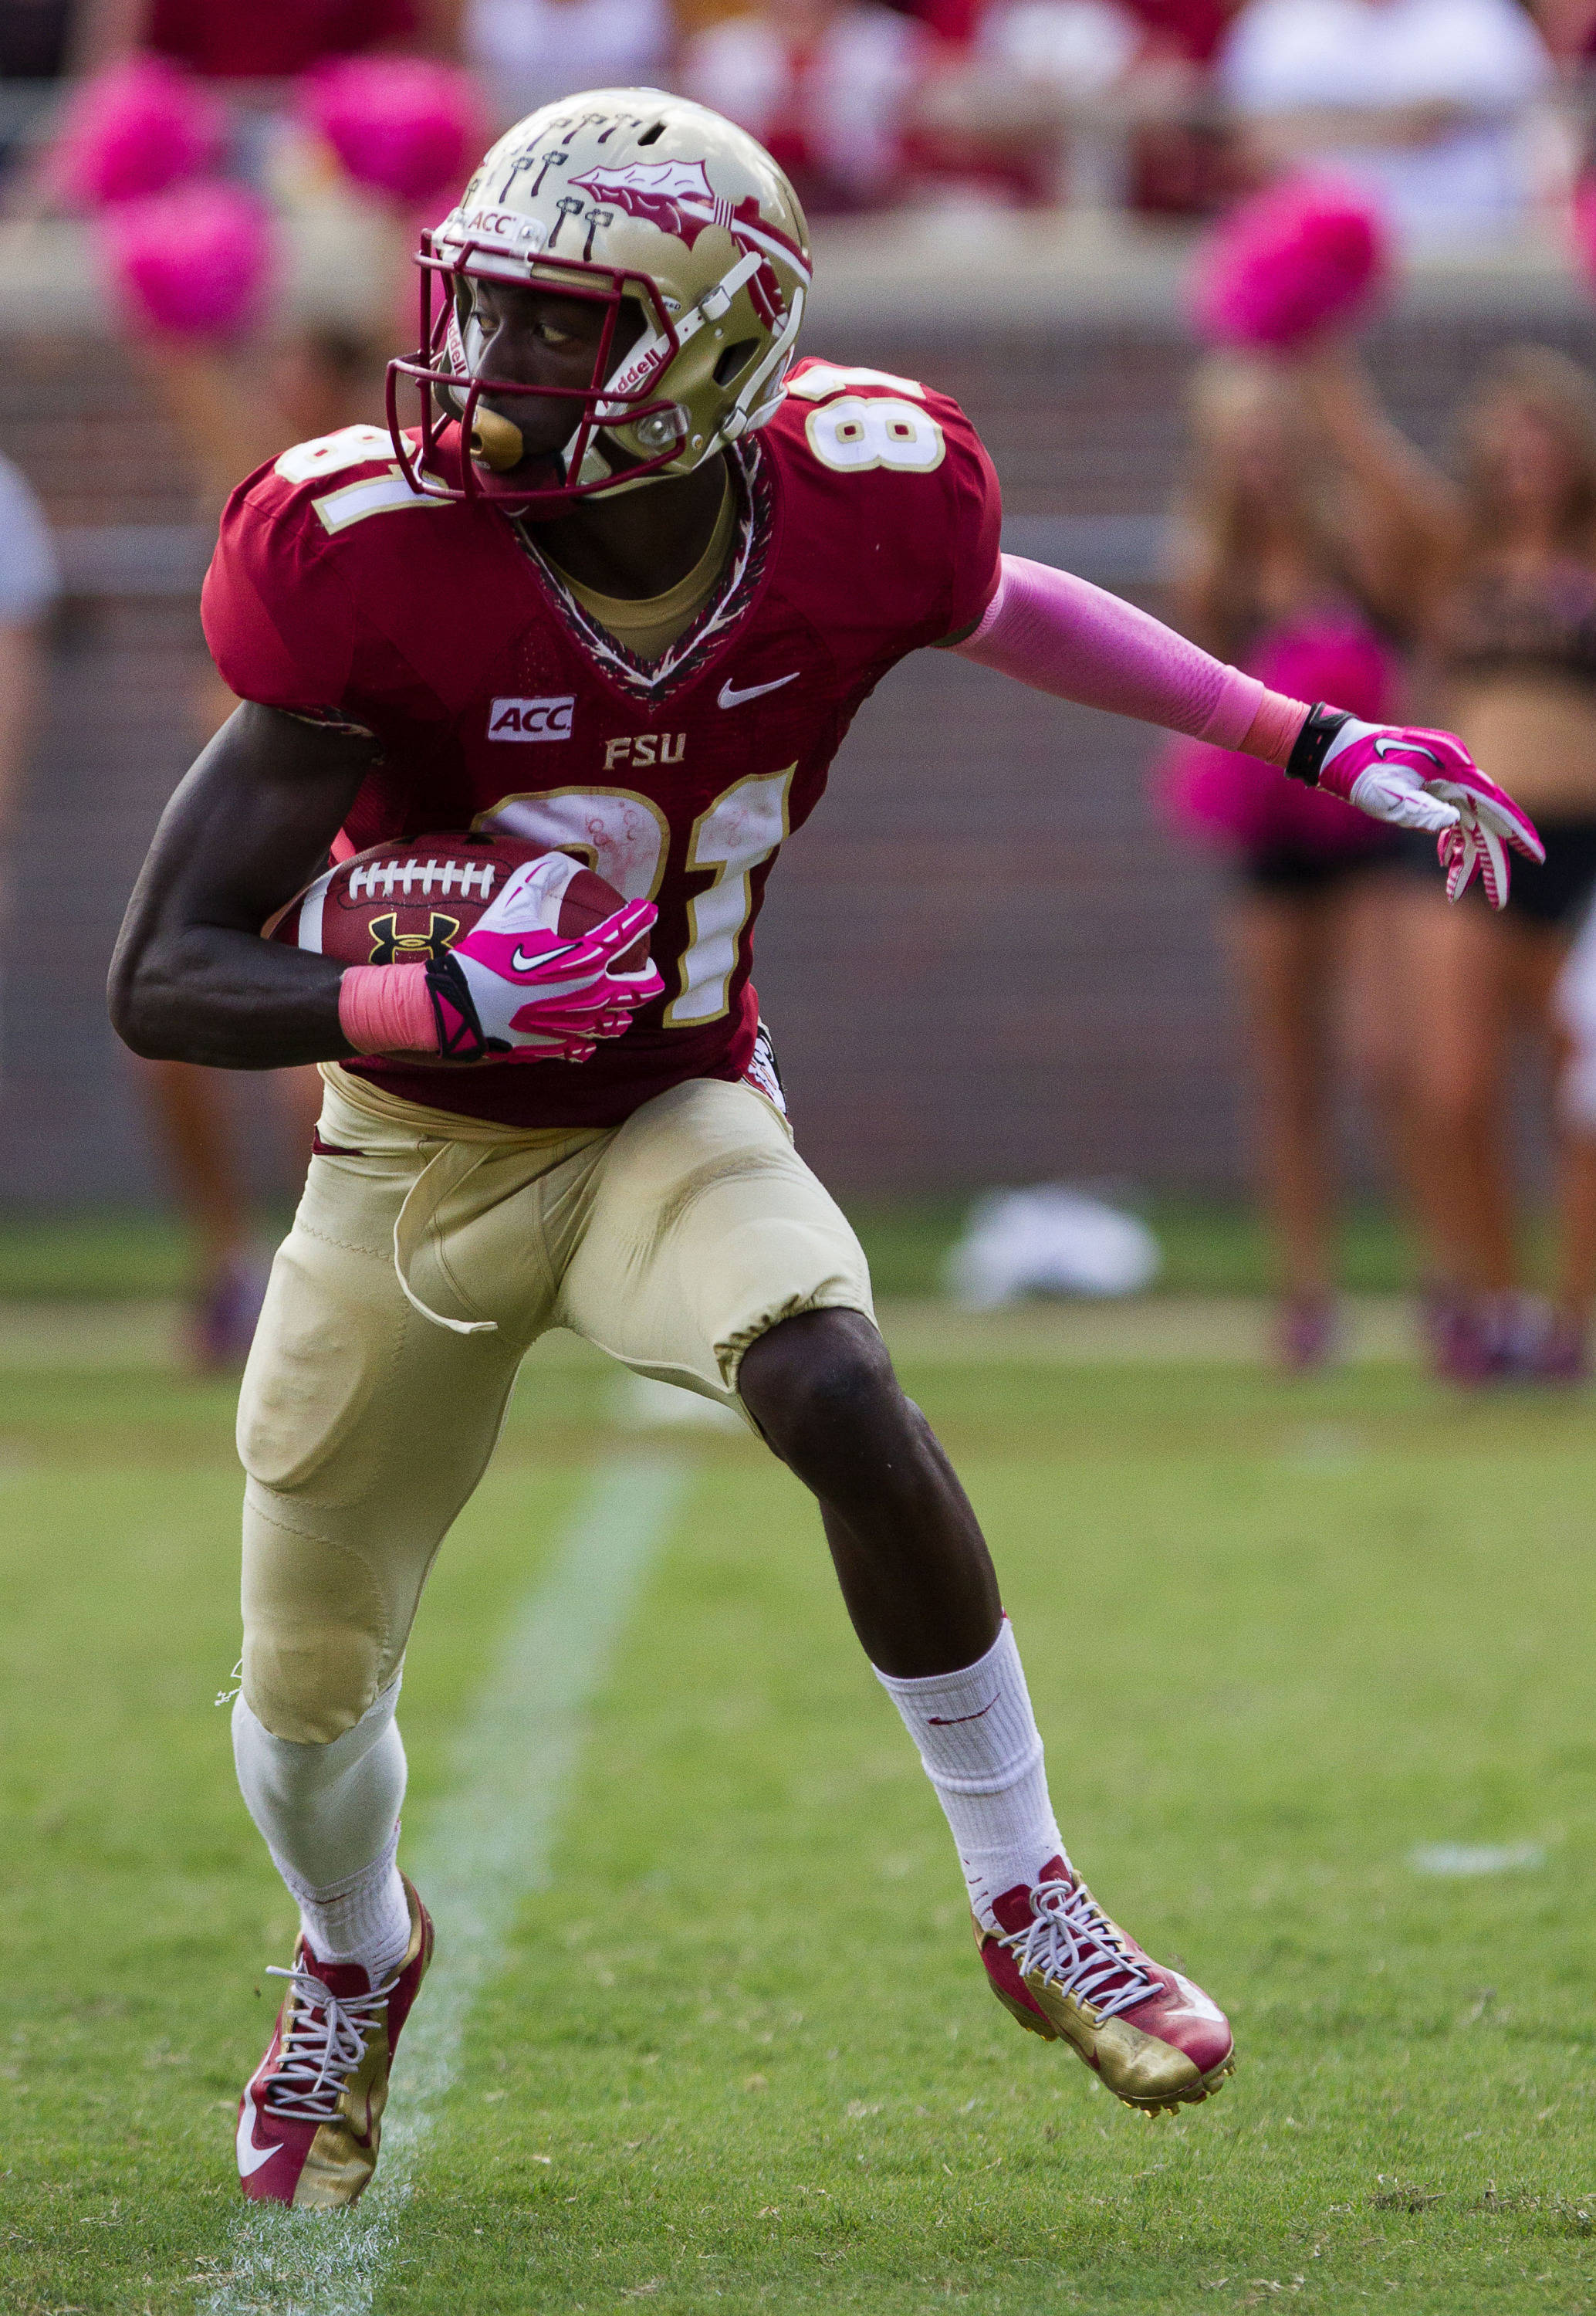 Kenny Shaw (81) runs with the ballduring FSU Football's 63-0 shutout of Maryland on Saturday, October 5, 2013 in Tallahassee, Fla.